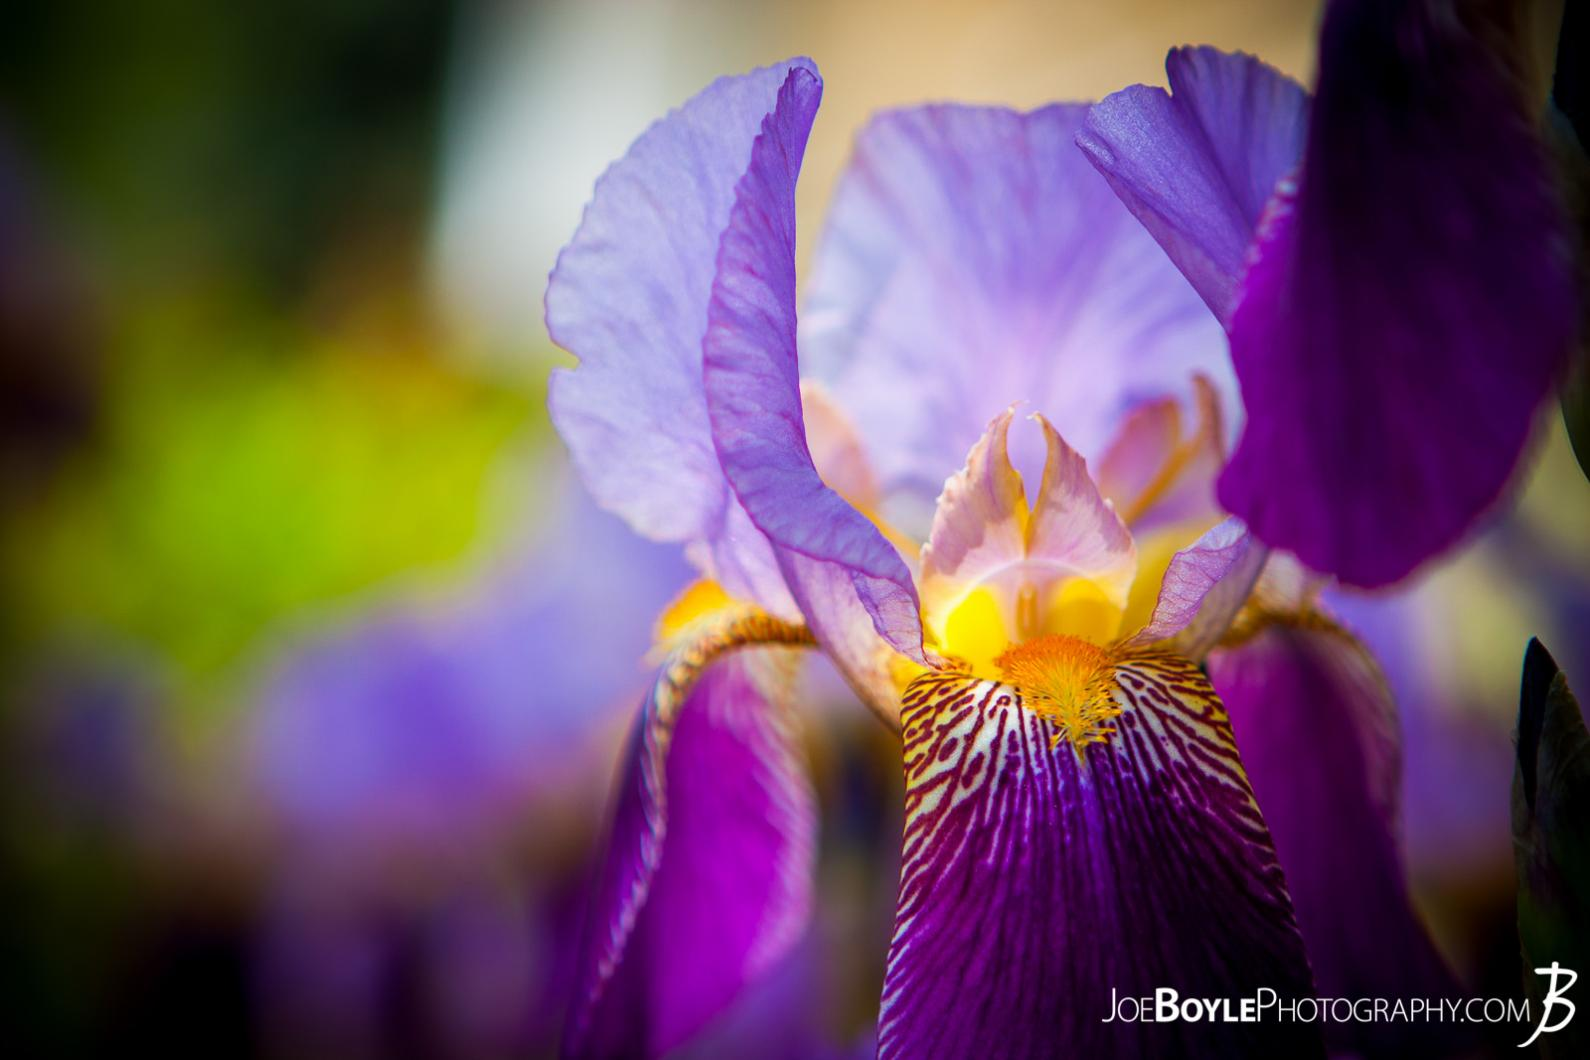 Iris propagation ii hort 202 penn state close view of an iris flower httpjoeboylephotography izmirmasajfo